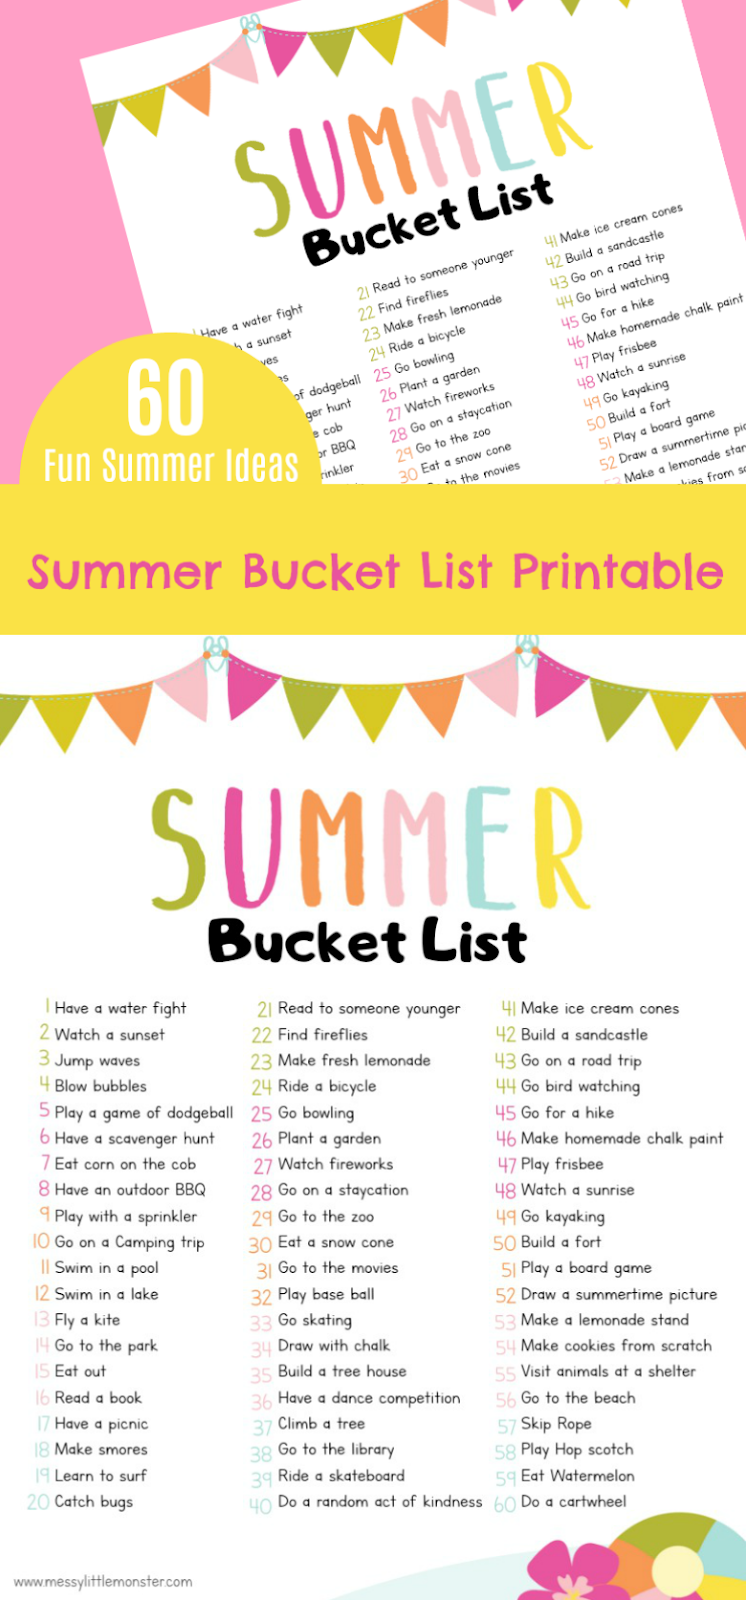 Printable summer bucket list for kids. 60 fun summer activity ideas for kids